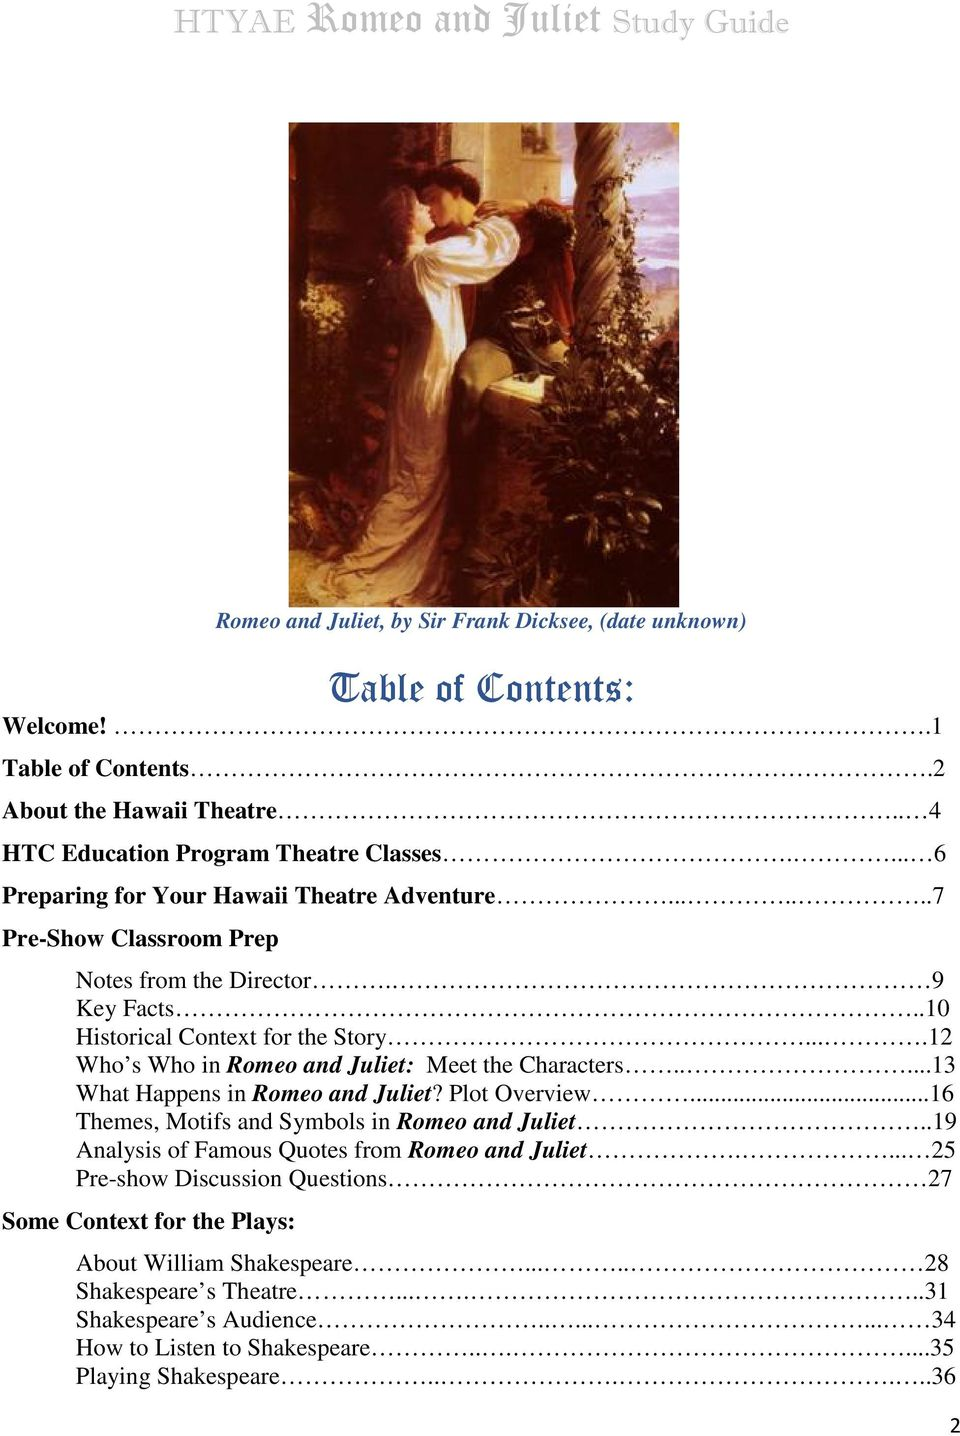 thesis for romeo and juliet Romeo and juliet essay thesis - professional reports at affordable costs available here will make your studying into delight use this platform to order your valid thesis handled on time commit your dissertation to professional scholars working in the service.